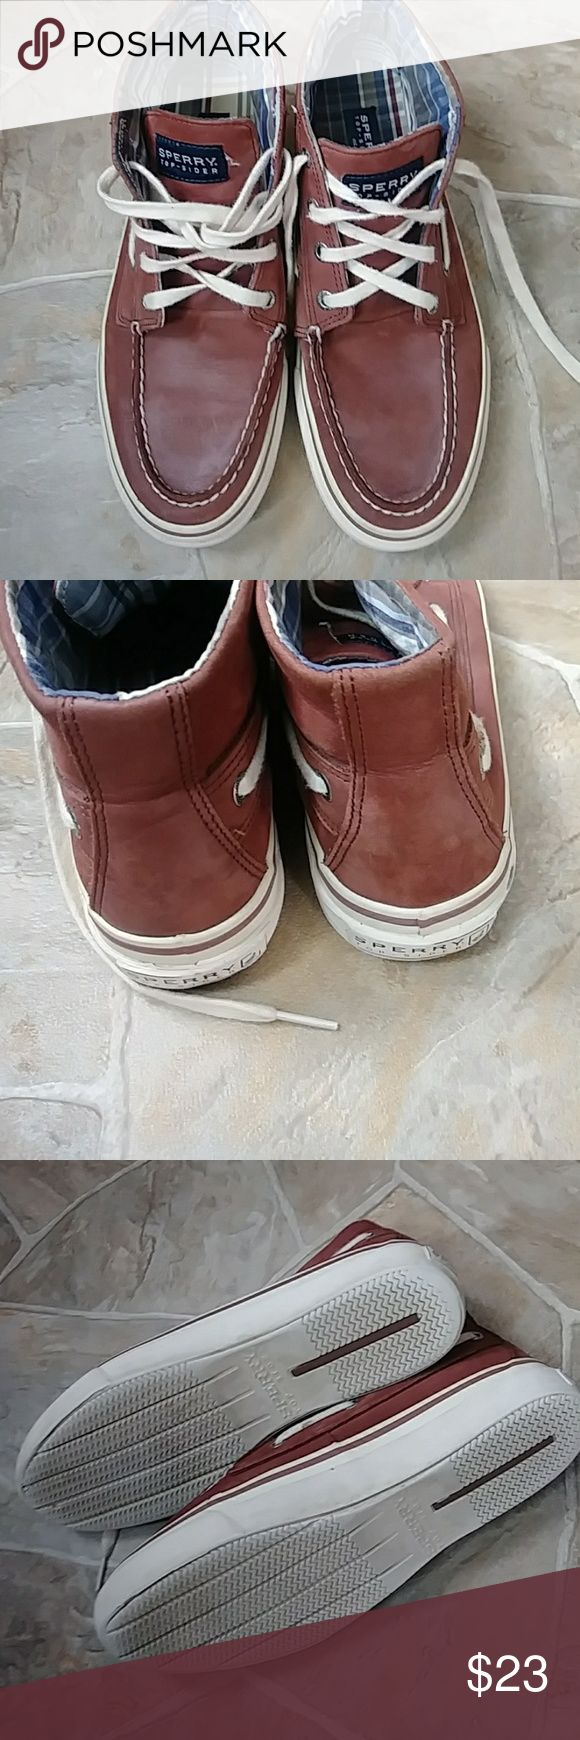 Men's Sperry Top-Sider Sperry mens shoe boot. Shoes laces are in great shape. Shoe has one minor flaw and is shown in pictures. Perfect to complement your style. Sperry Top-Sider Shoes Sneakers